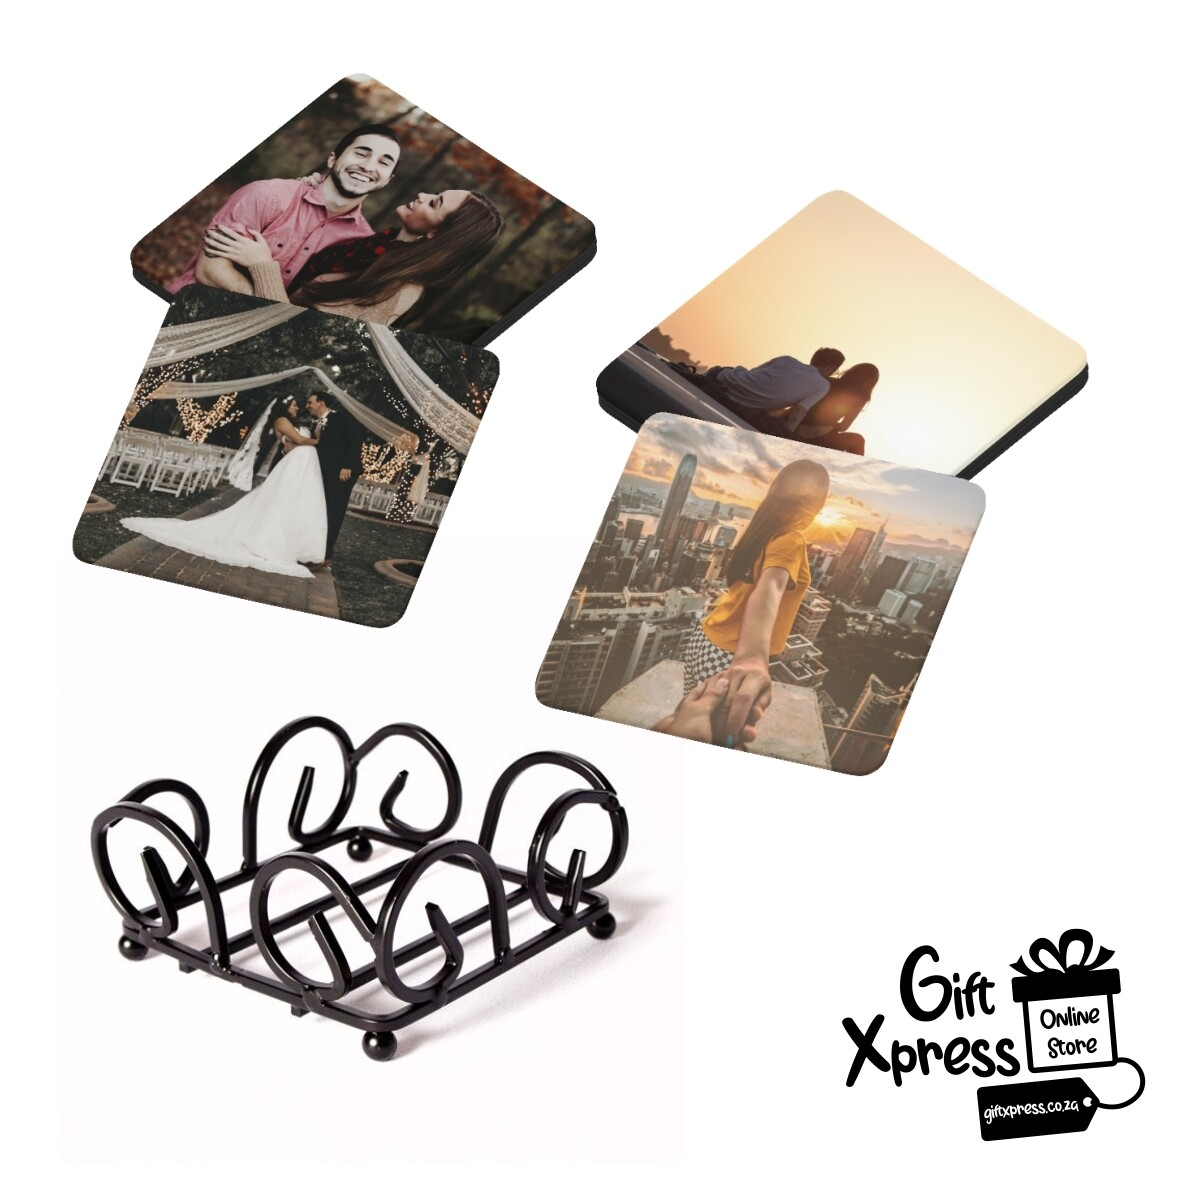 SET OF 4 CUSTOMIZED WOODEN COASTERS WITH A COASTER RACK